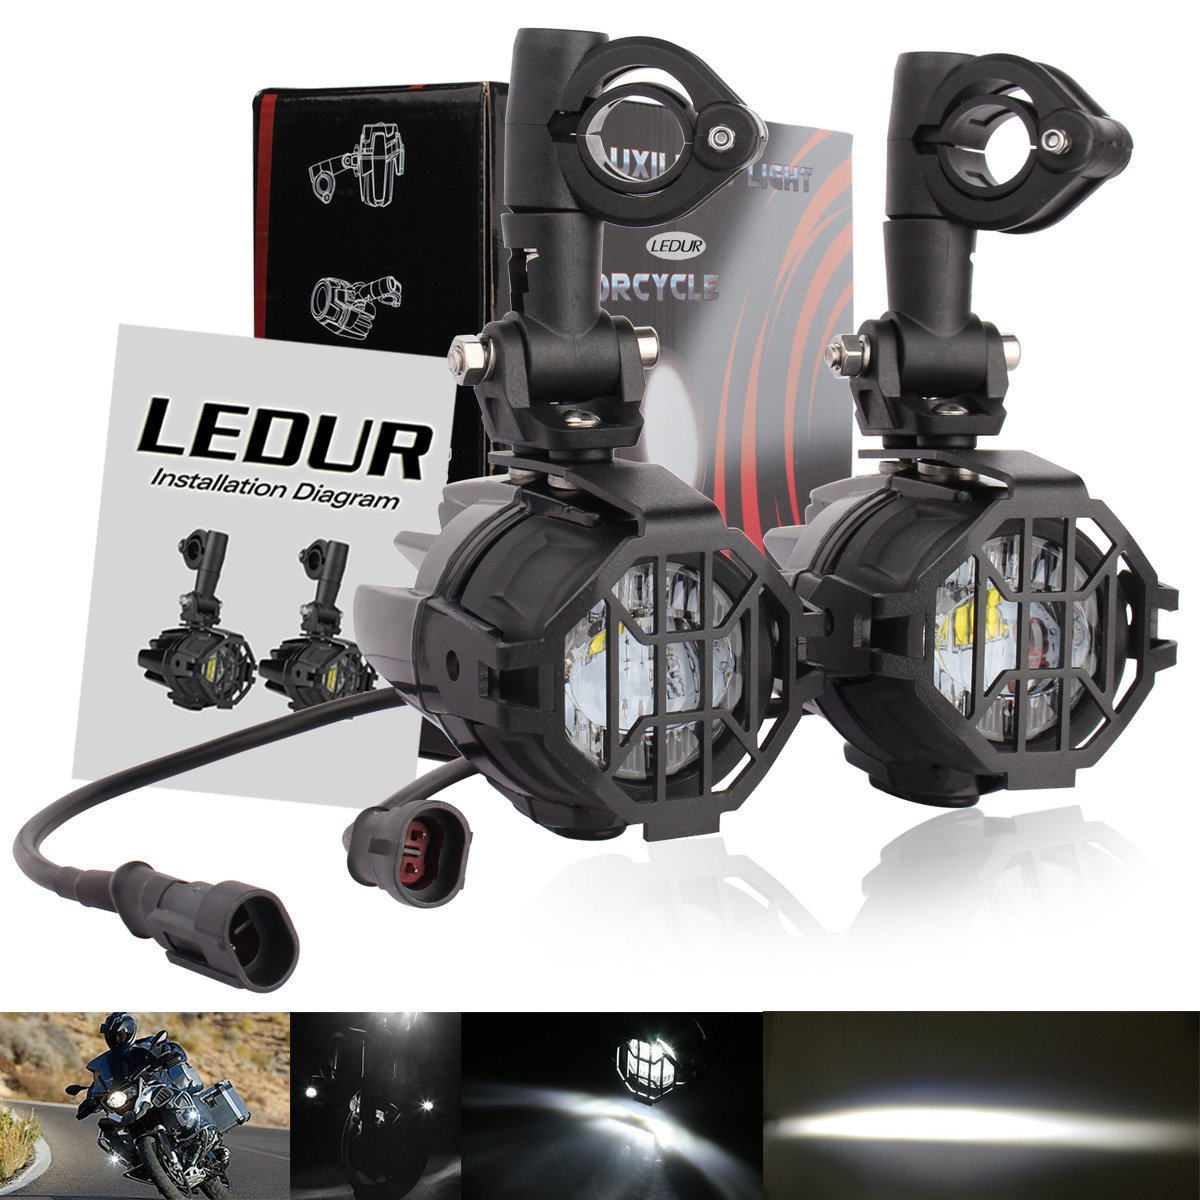 Ledur Auxiliary Lights For Bmw Motorcycle 40w 6000k Spot Cree Headlamps Wiring Diagram Driving Fog Lamps Automotive